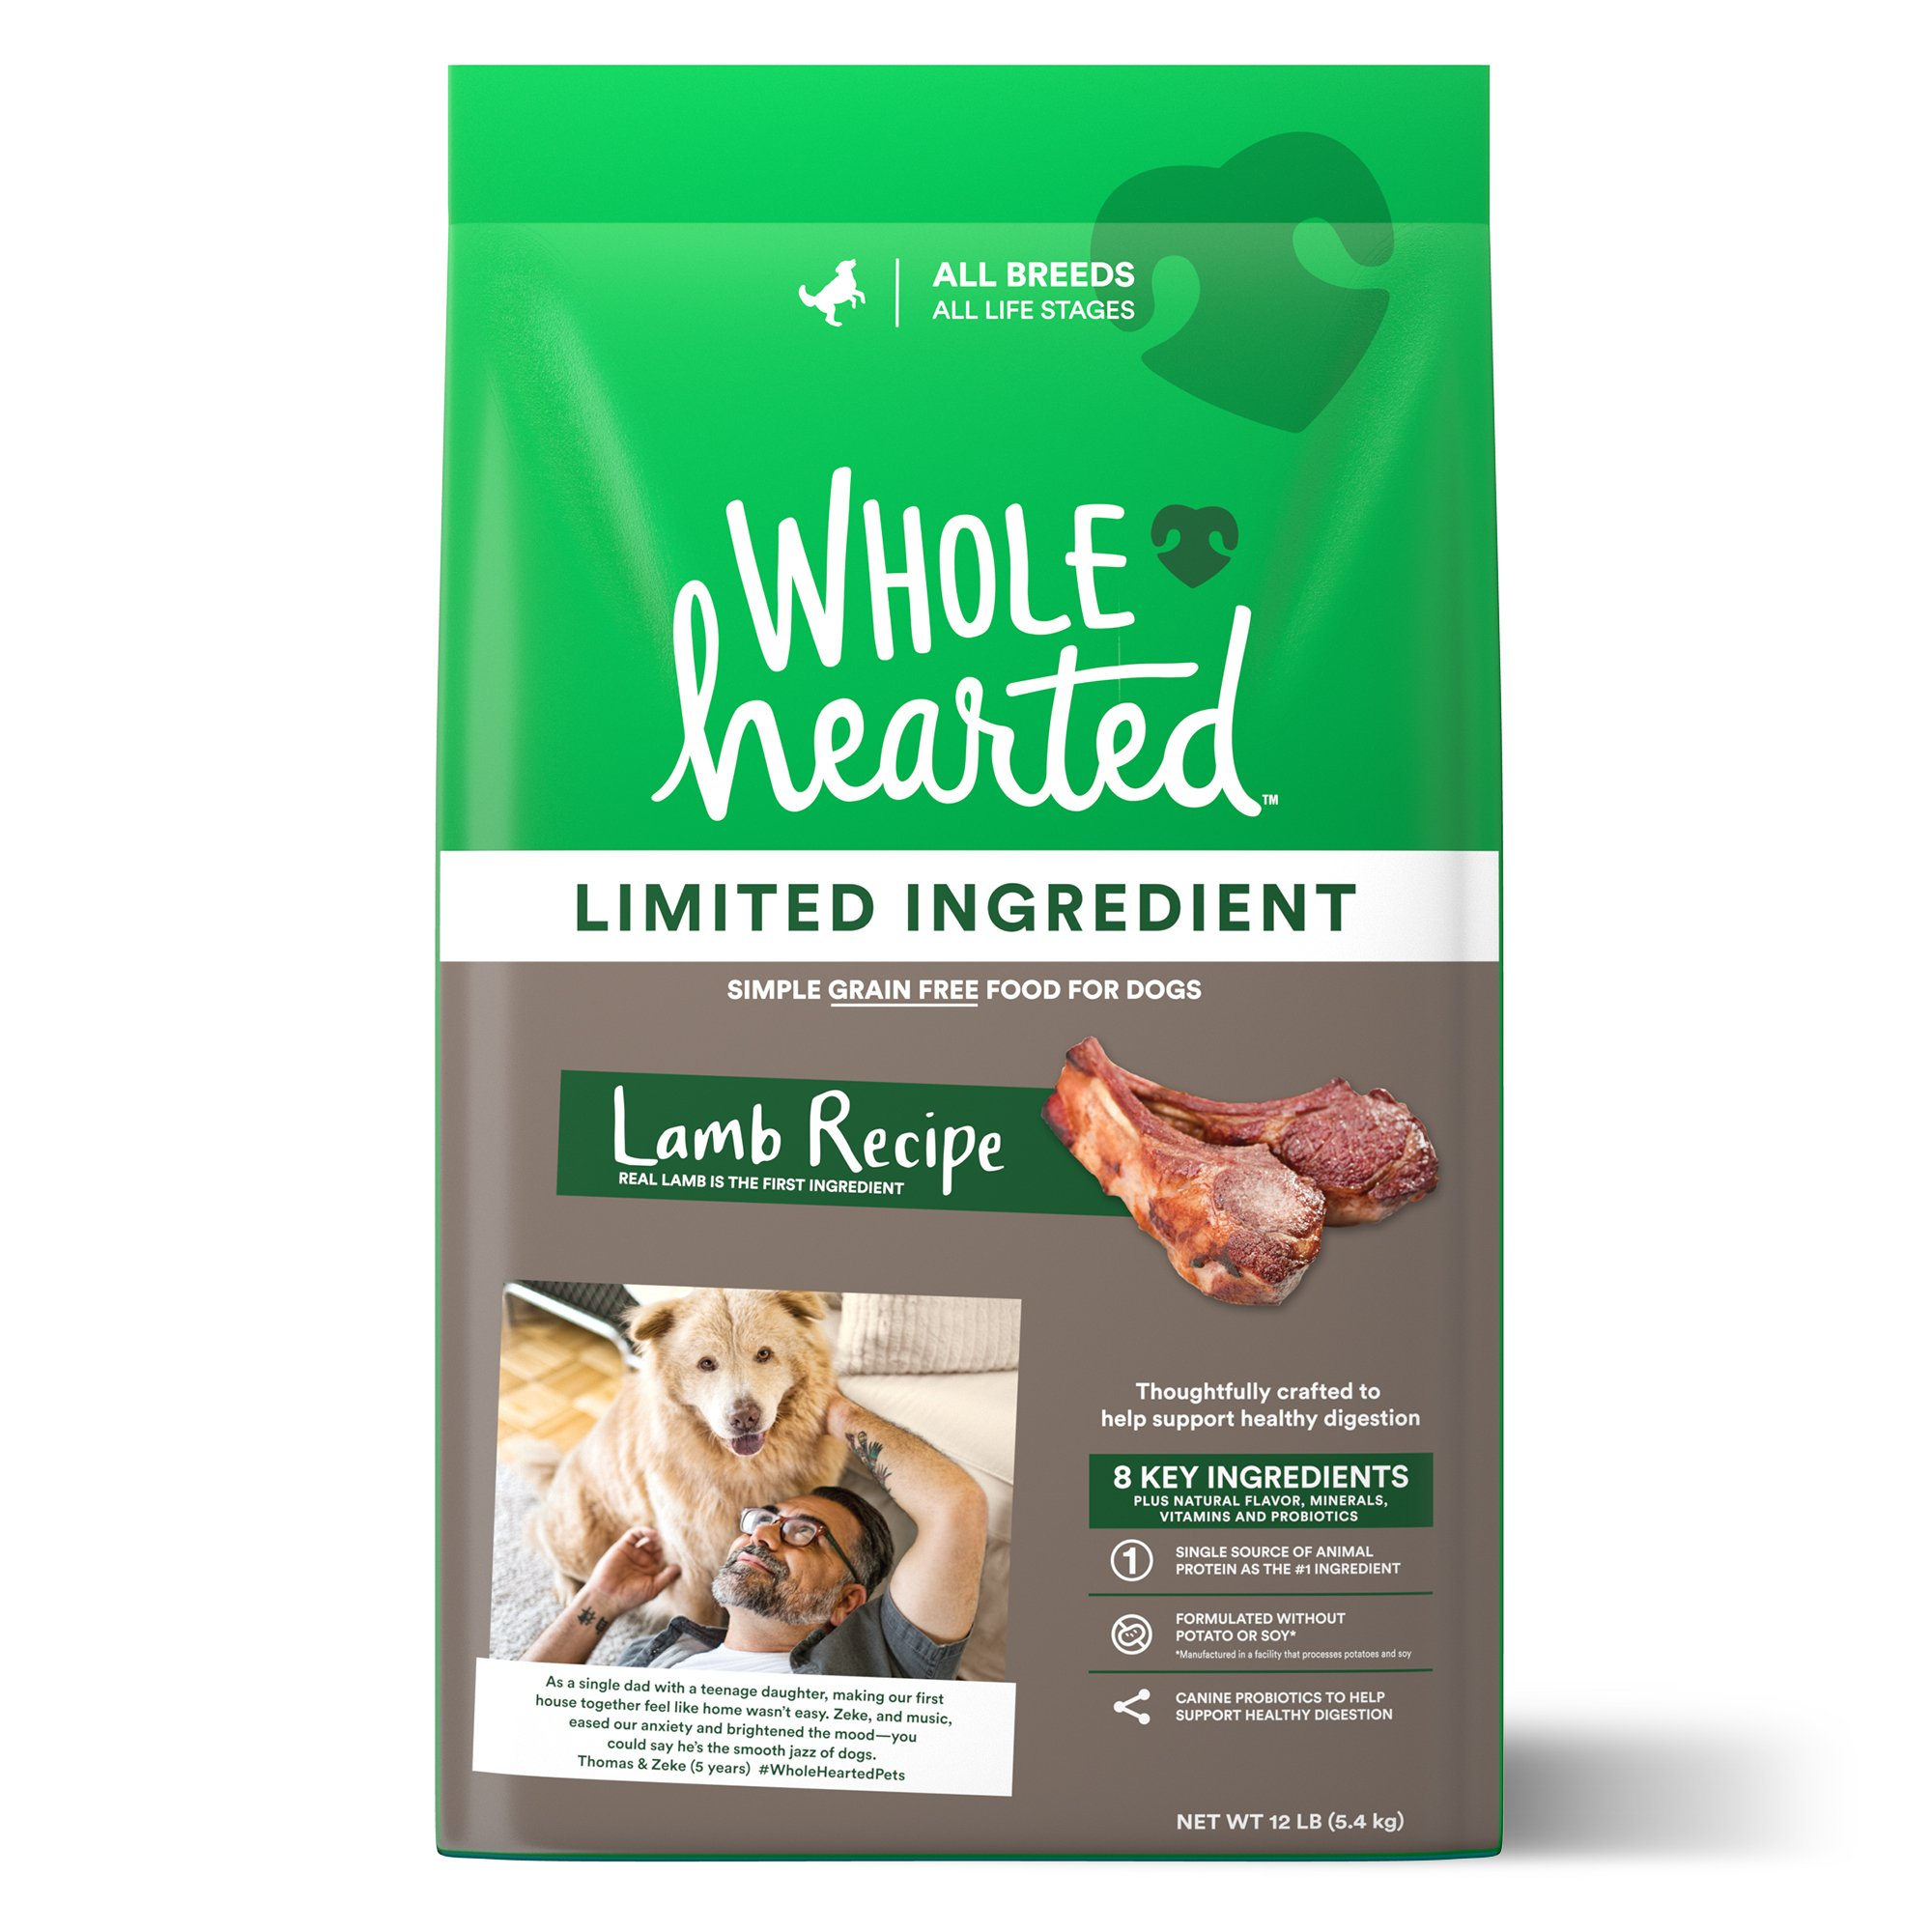 WholeHearted Grain Free Limited Ingredient Lamb Recipe Dry Dog Food for All Life Stages and Breeds, 12 lbs.